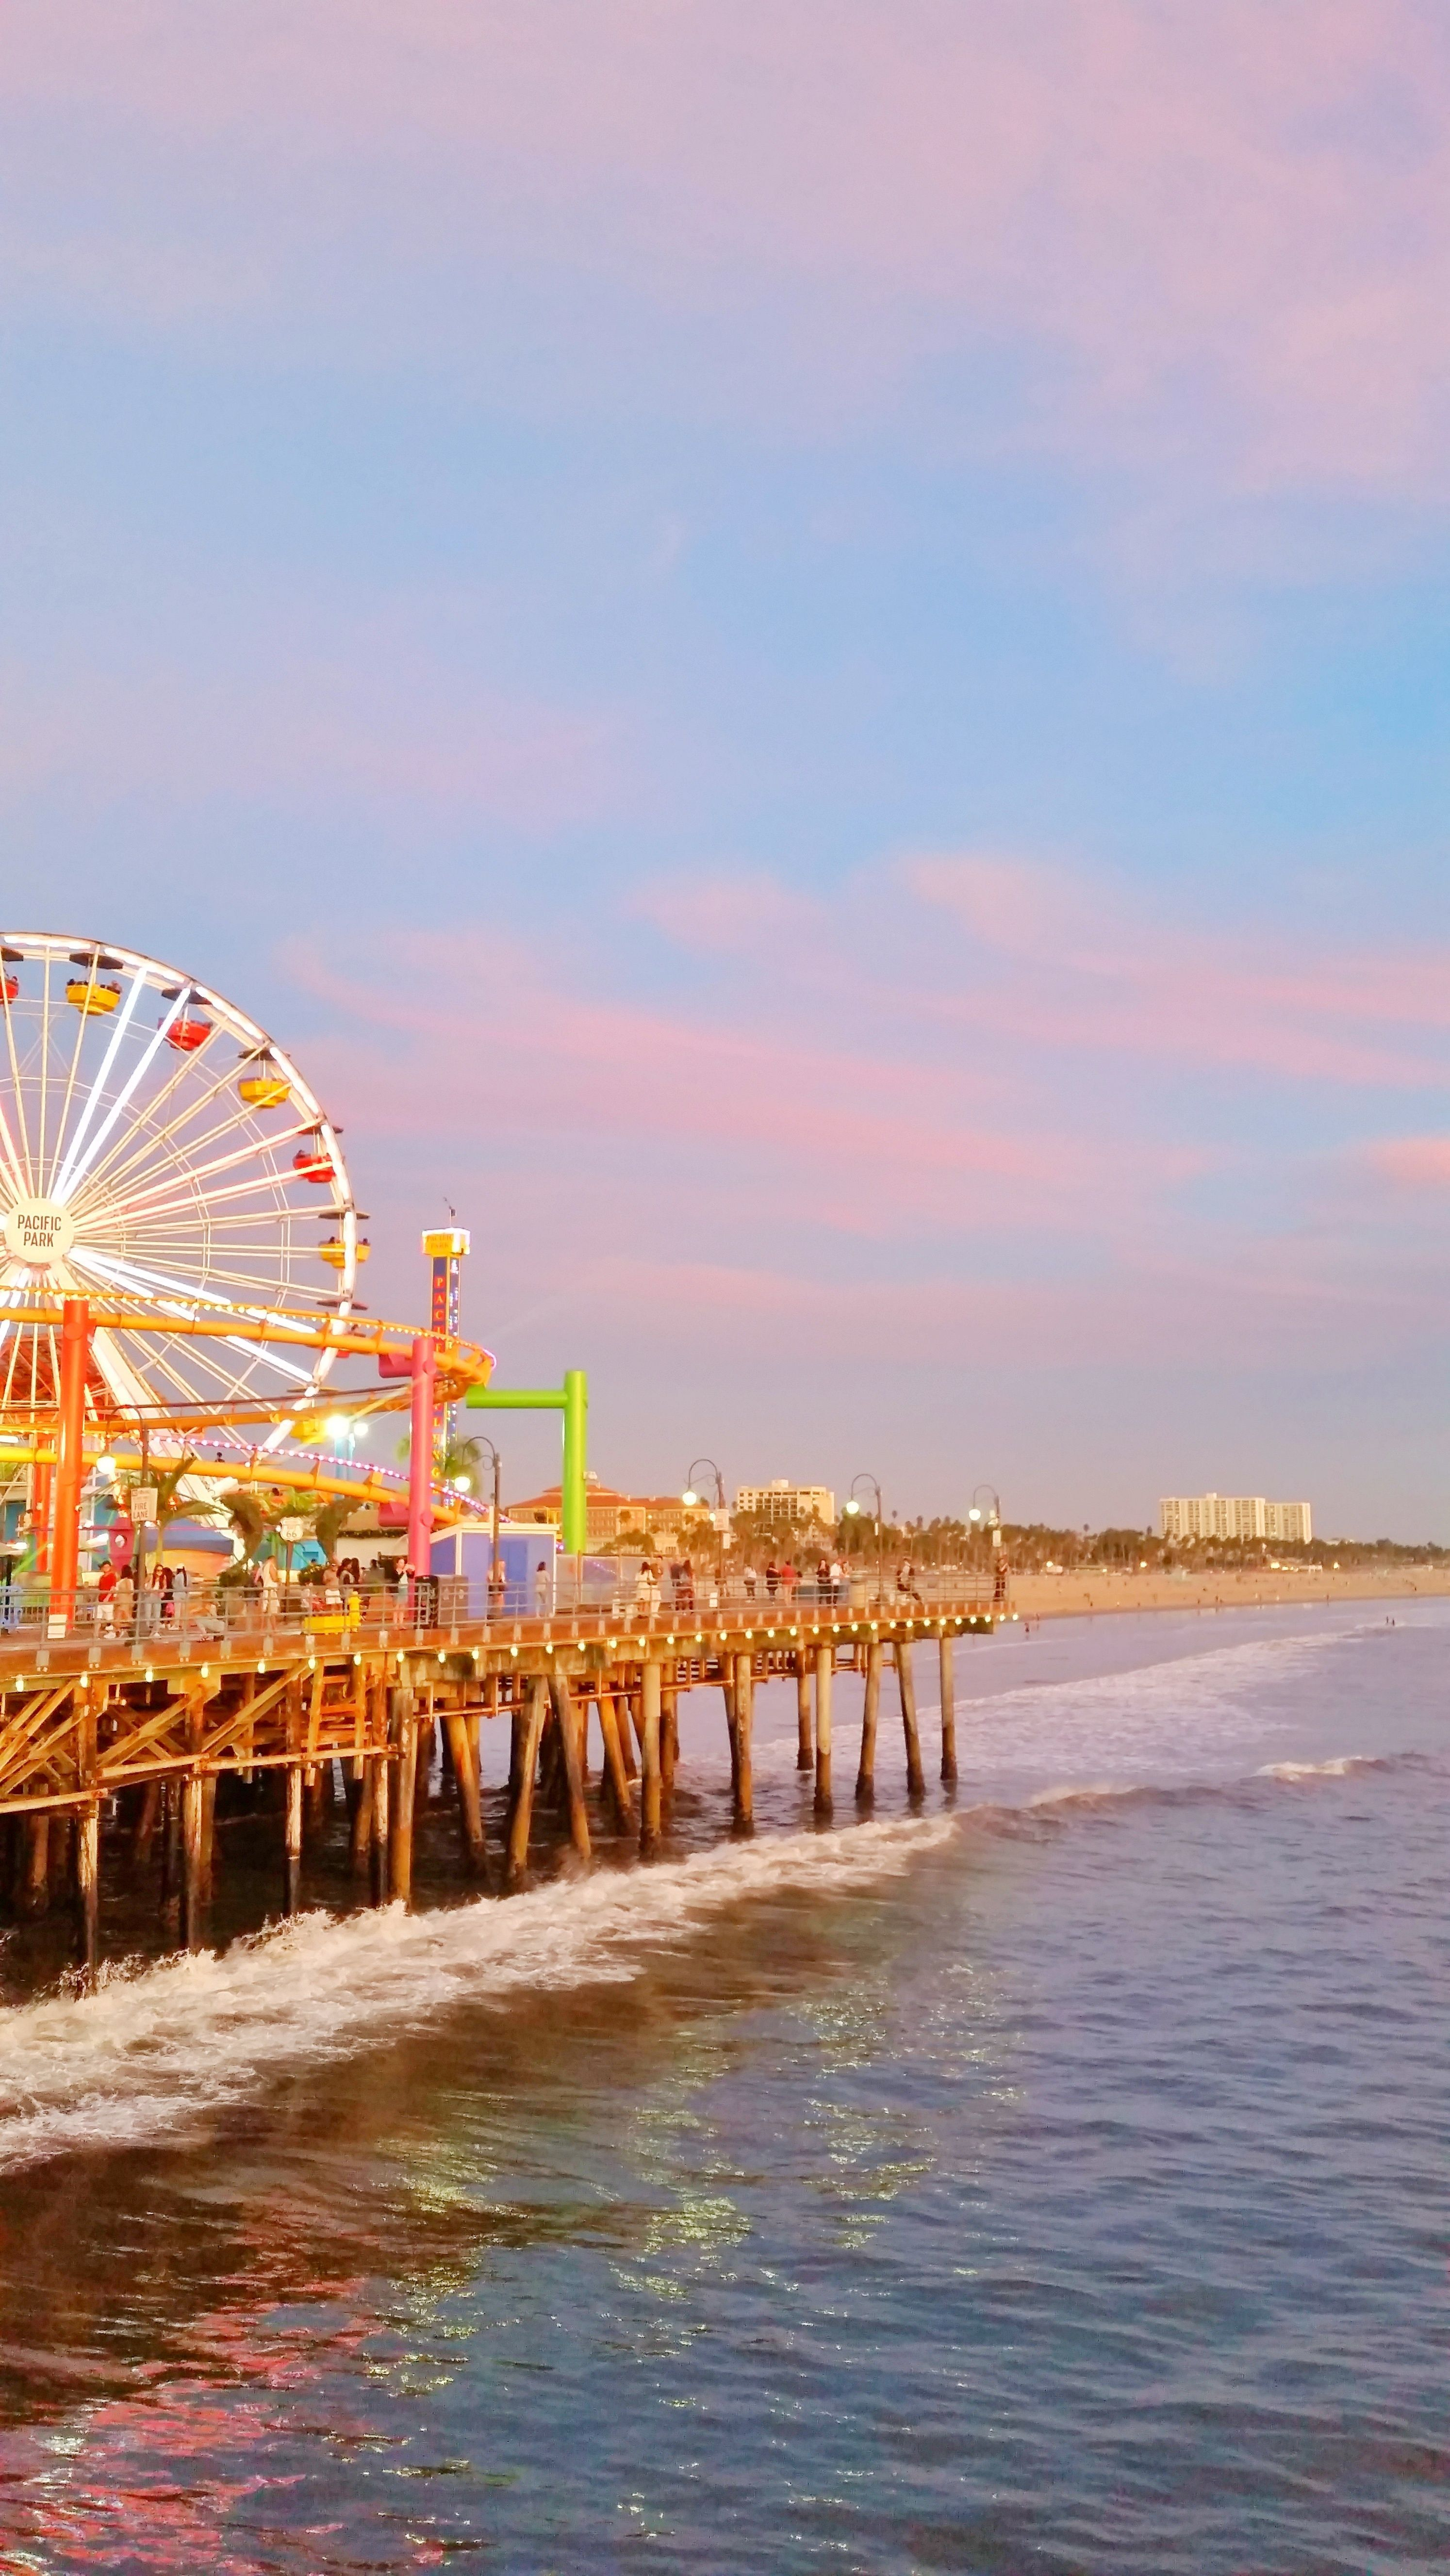 Los Angeles California sunset beach picture -   #angeles #beach #california #OutdoorTravelAdventure #picture #sunset